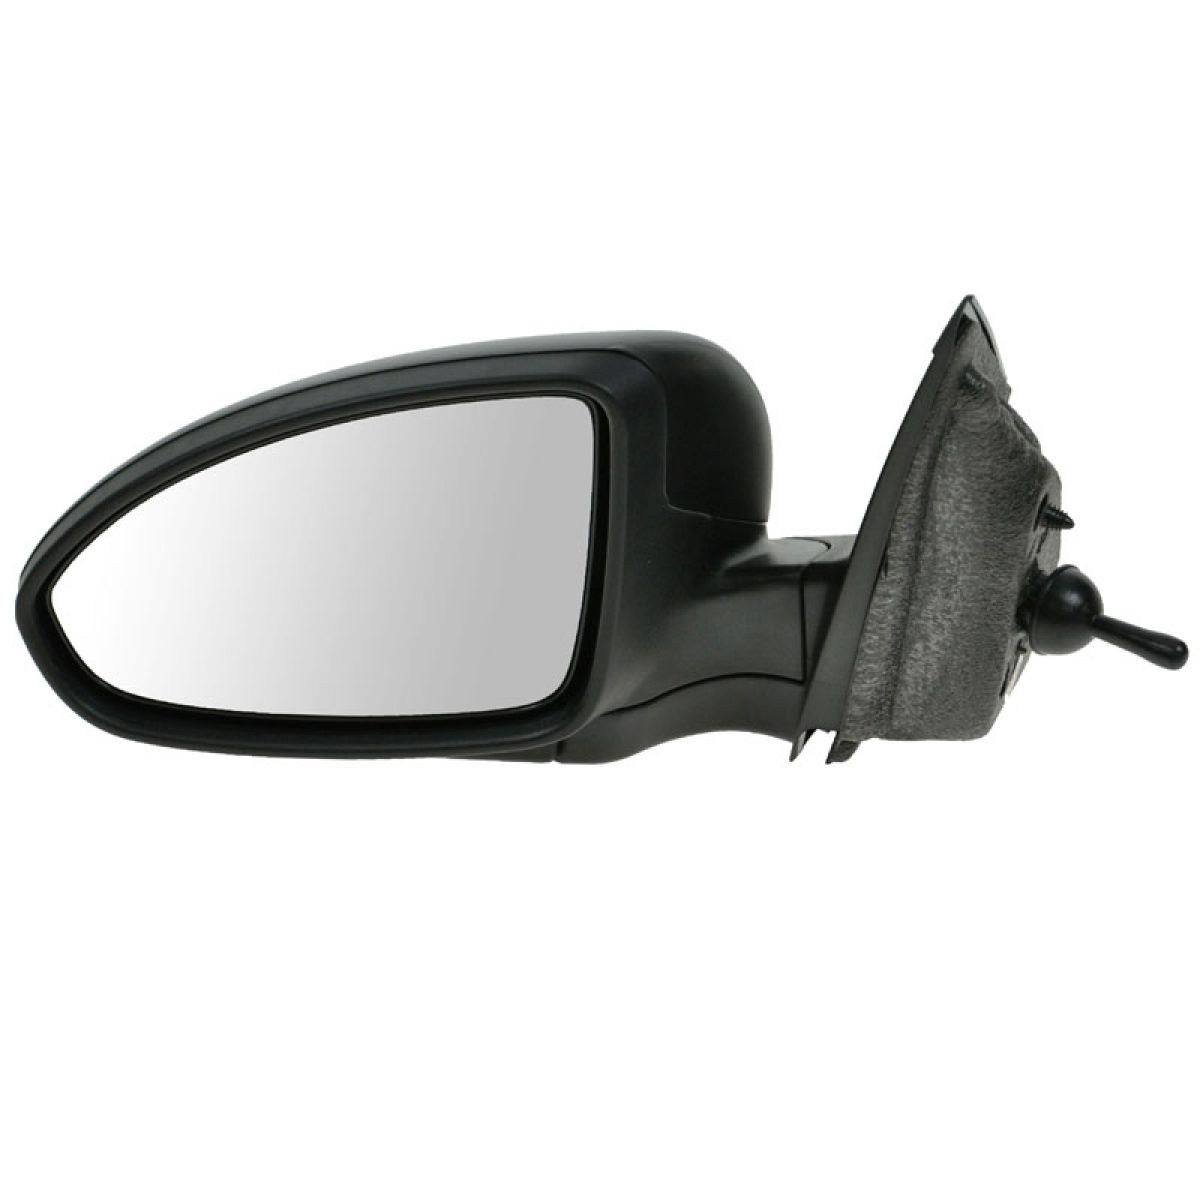 Side View Mirror Manual Remote Driver Left LH for 11-14 Chevy Cruze